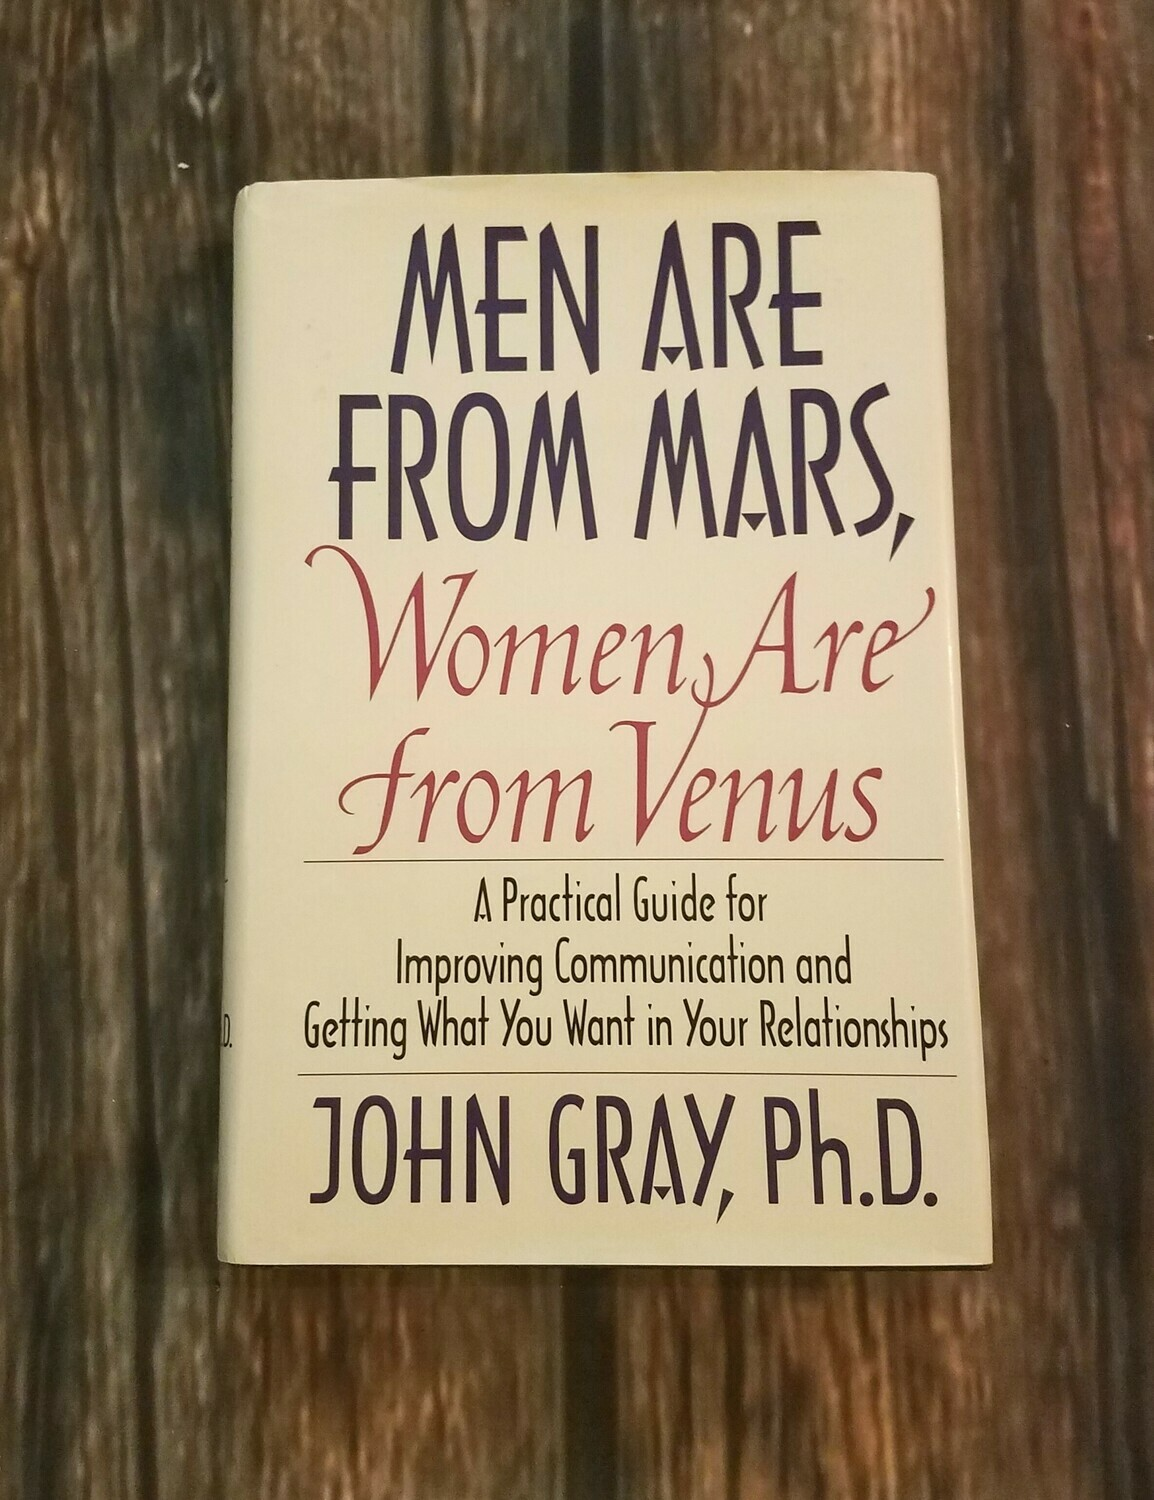 Men are from Mars, Women are from Venus by John Gray, Ph.D.